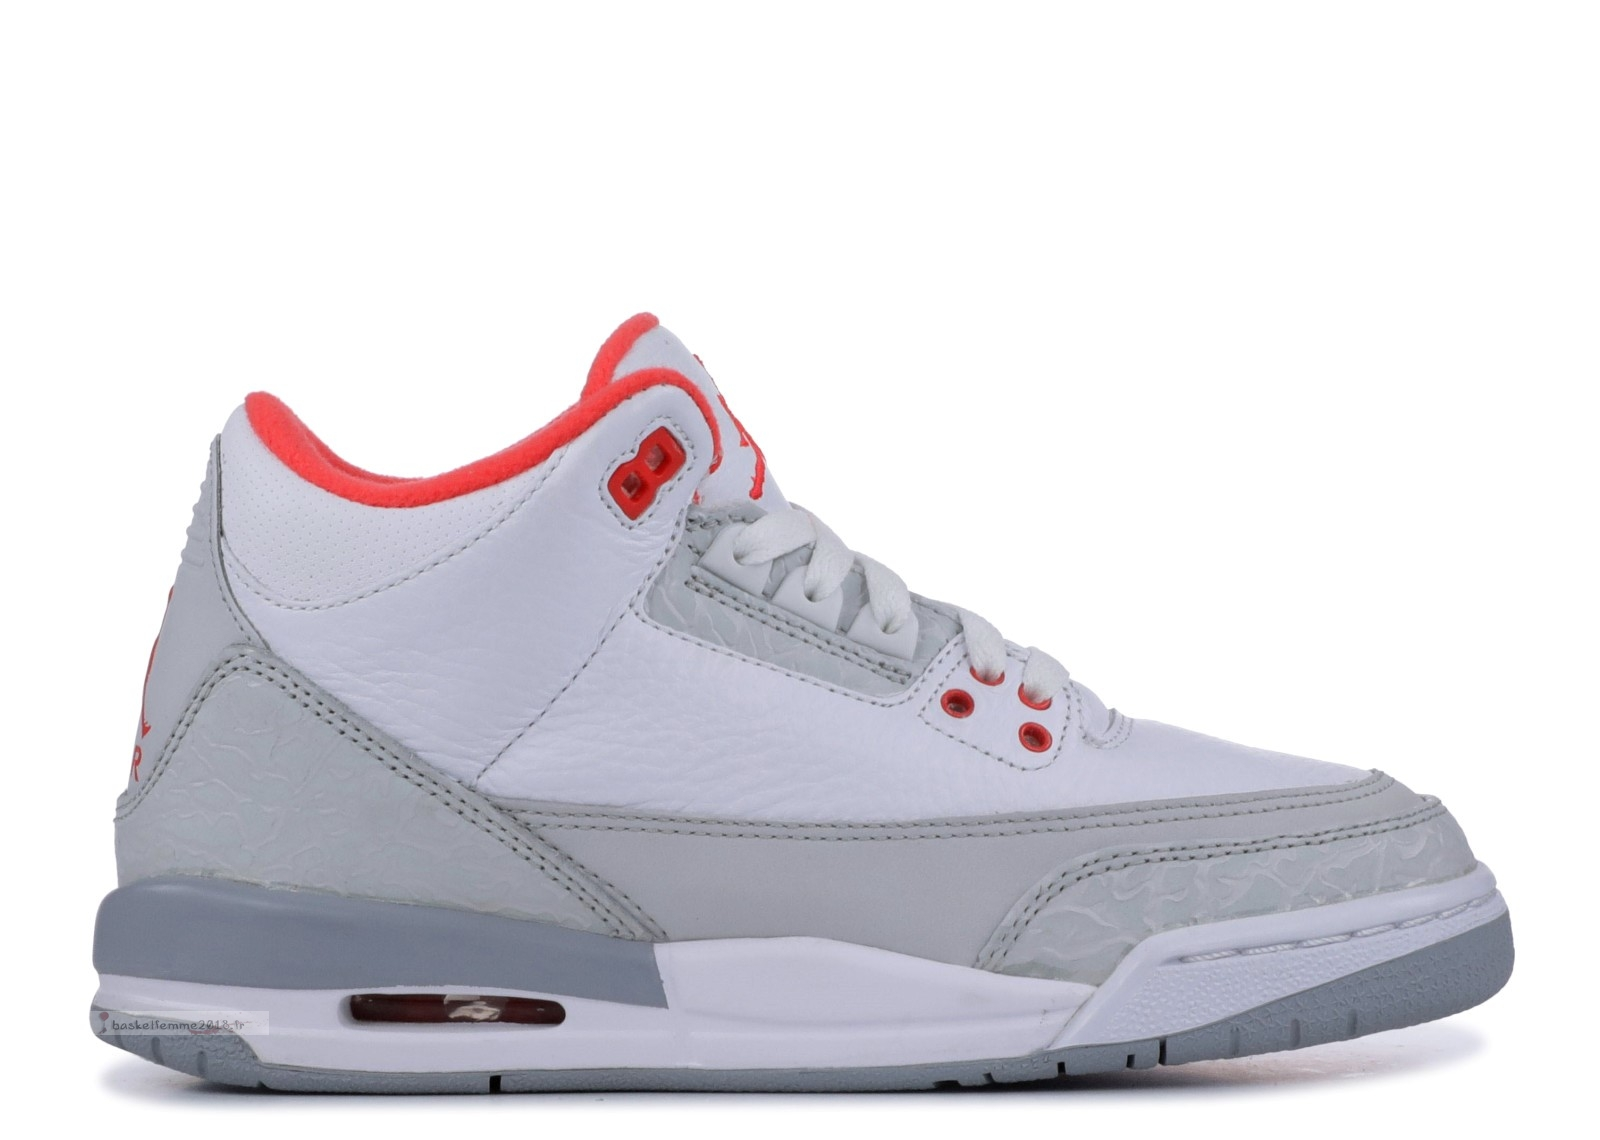 Air Jordan 3 Retro (Gs) Gris (441140-101) Chaussure de Basket